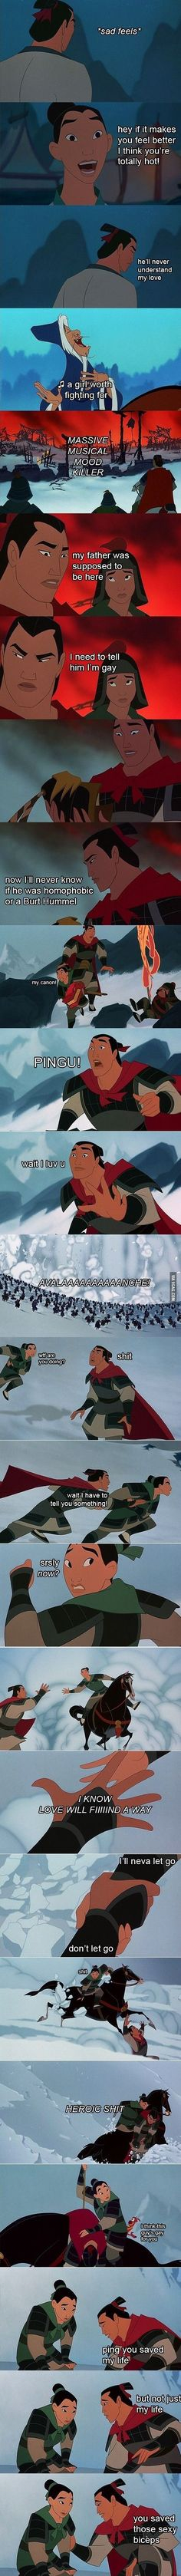 Mulan: Shang's Journey of Self Discovery Part II